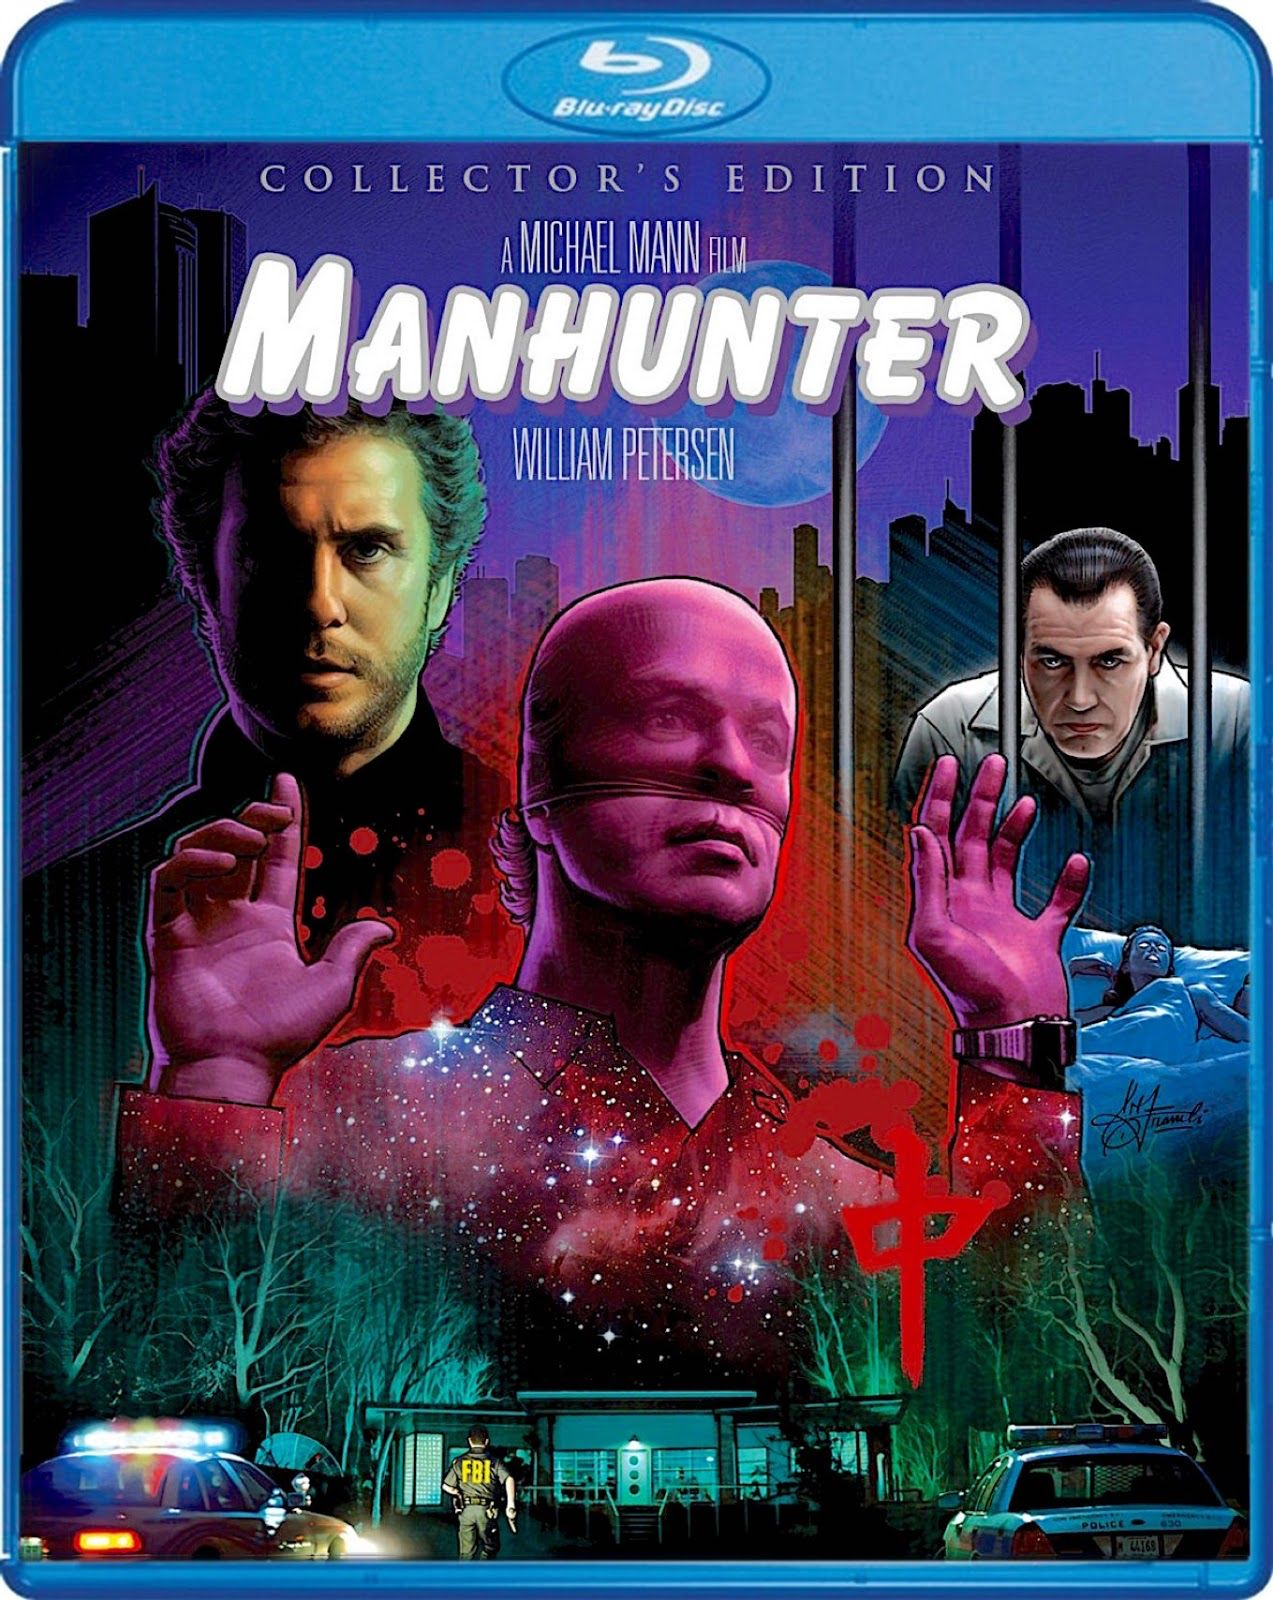 MANHUNTER COLLECTOR'S EDITION SCREAM FACTORY BLURAY Blu